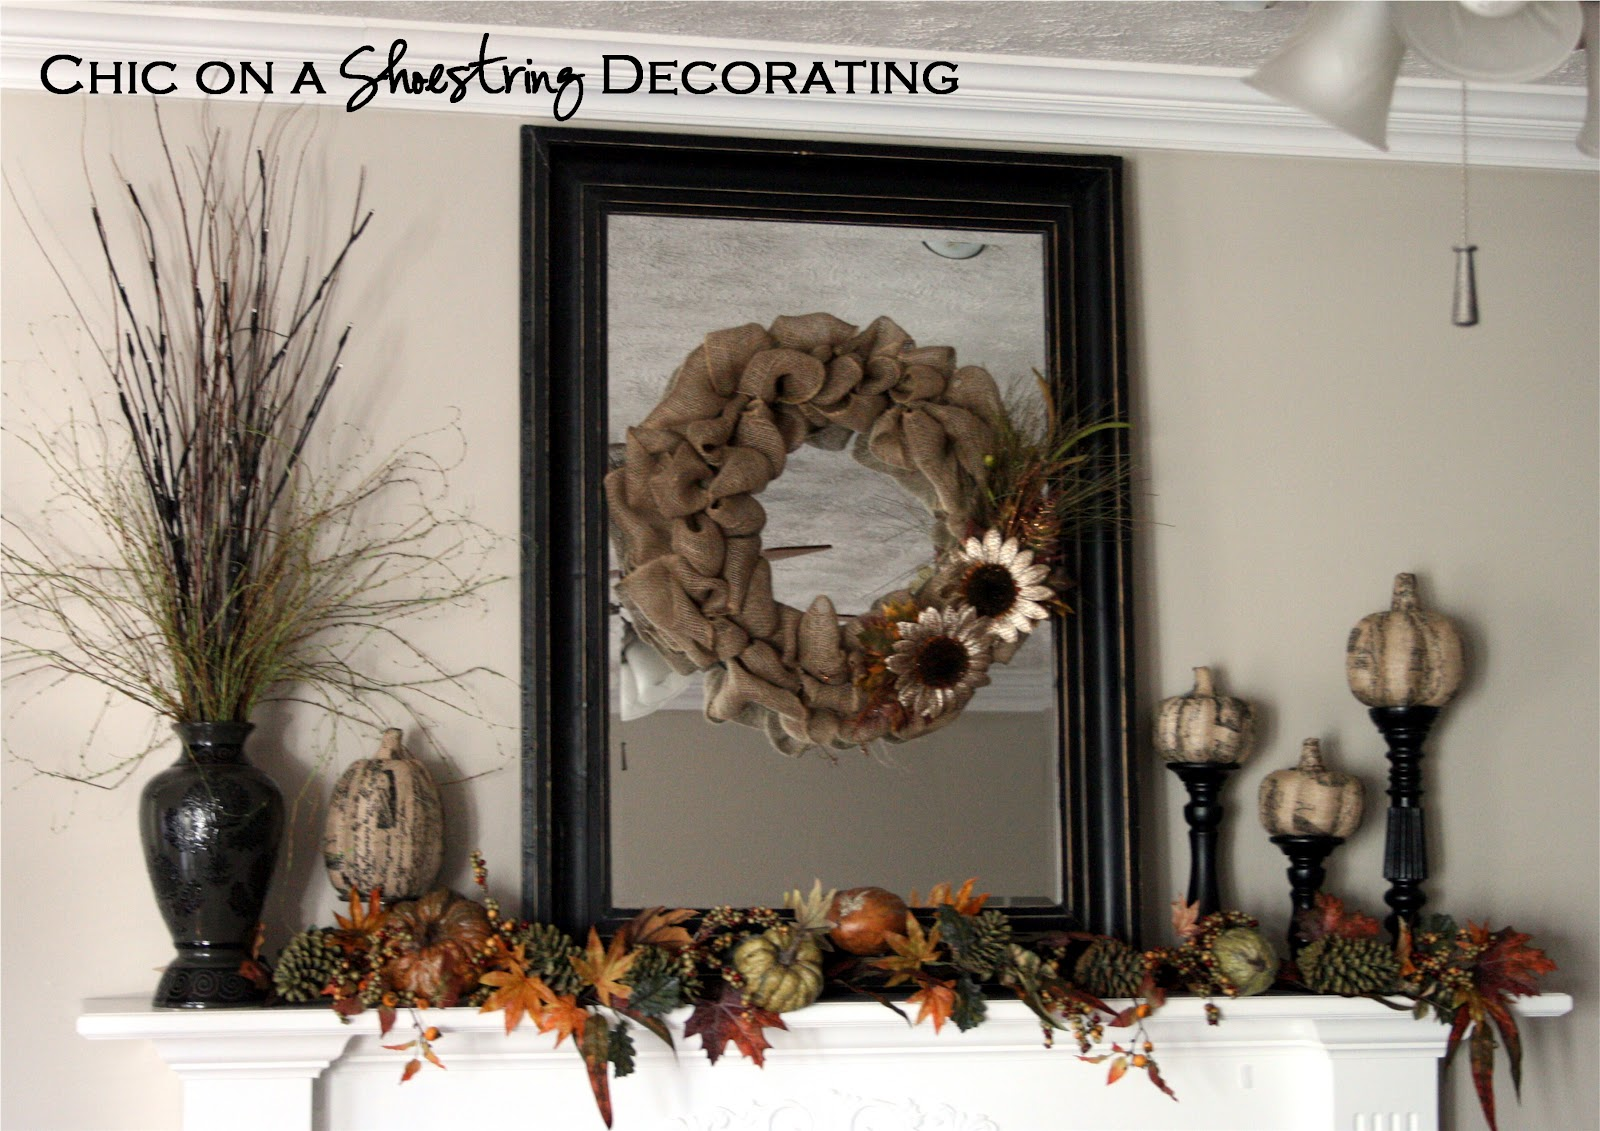 Decorating With Burlap Chic On A Shoestring Decorating Burlap Fall Mantle